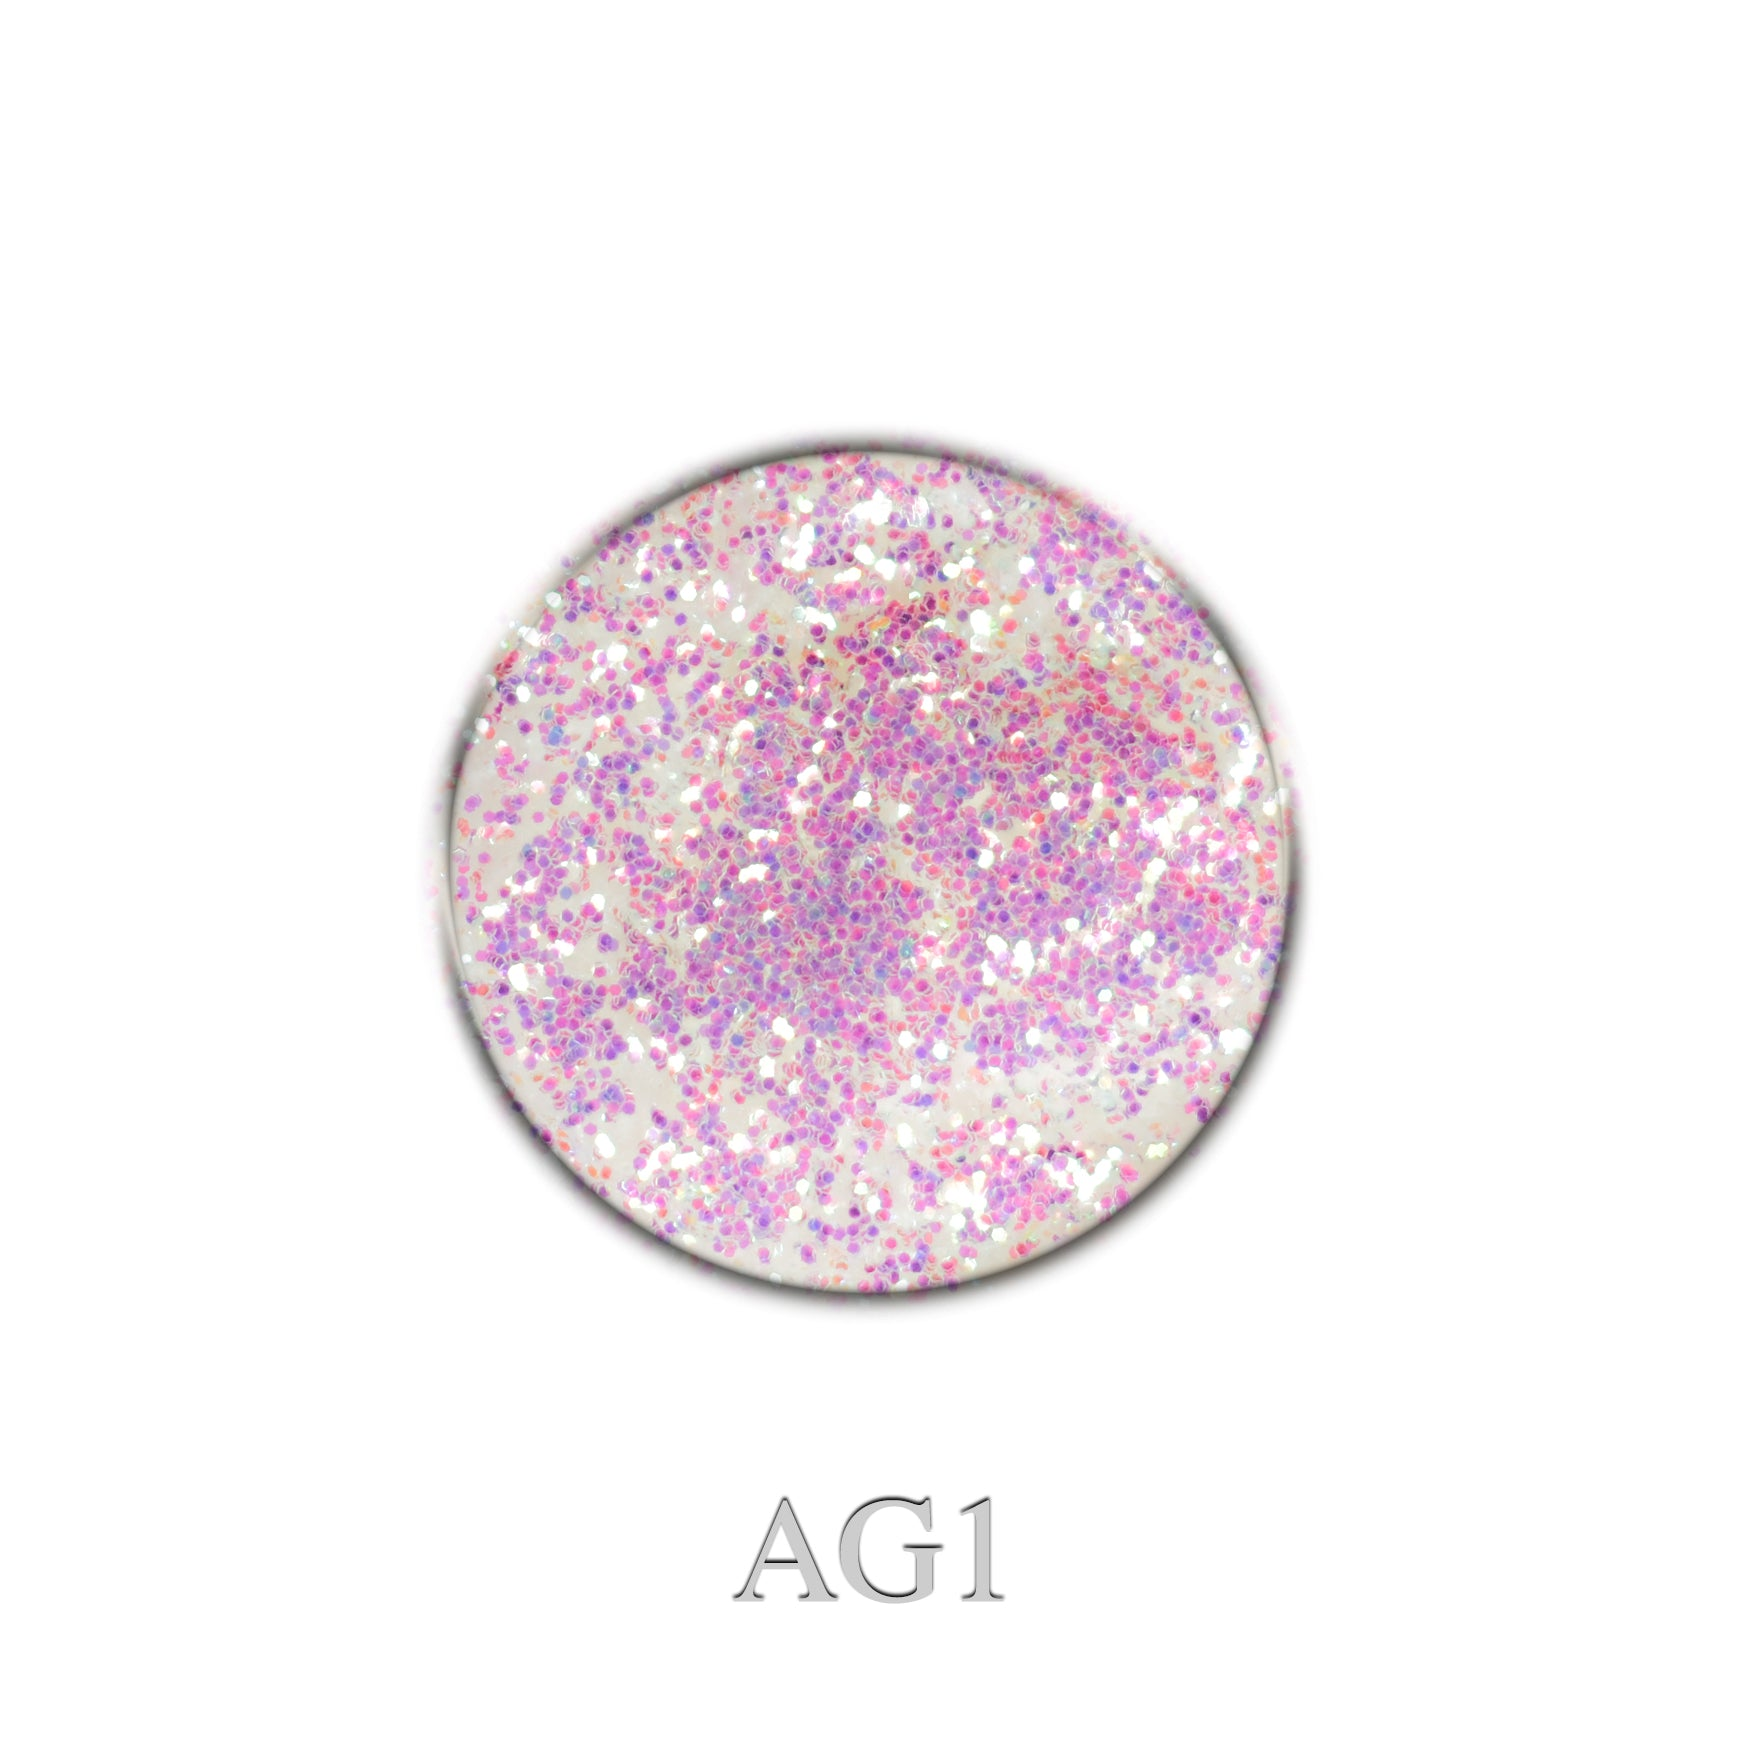 Angel Glitter AG1